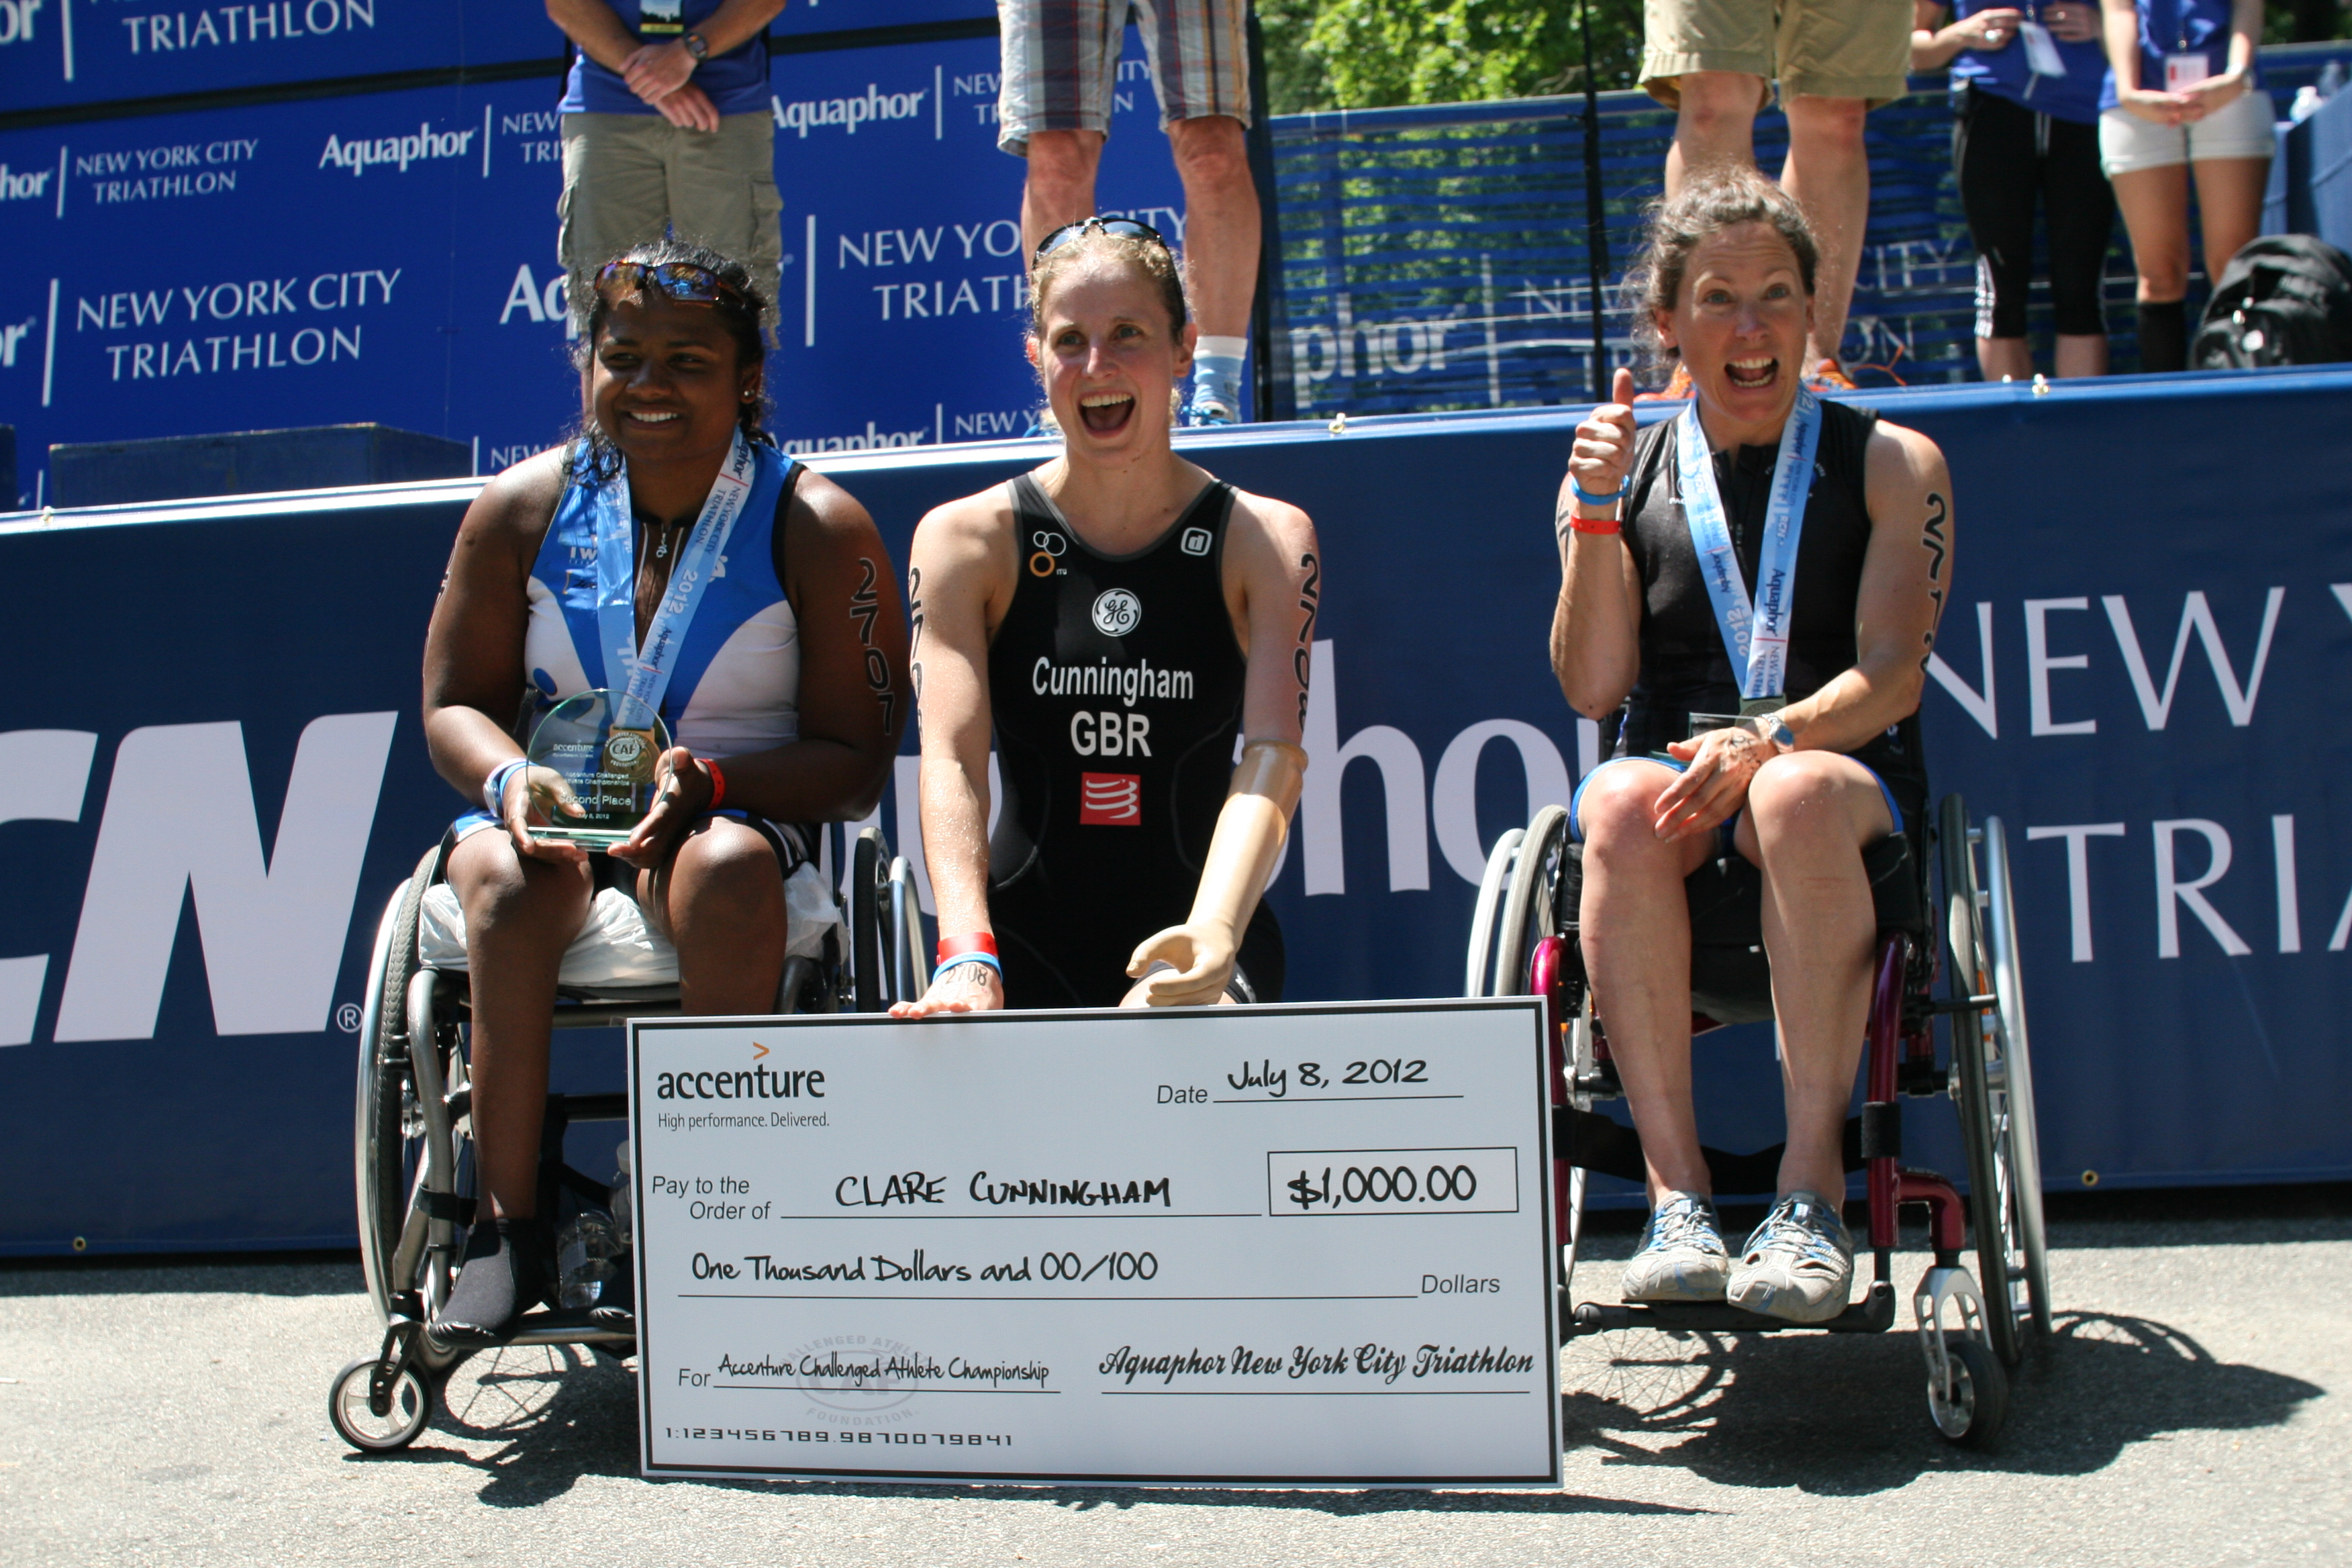 Minda Winning 2nd Place at 2012 NYC TRI